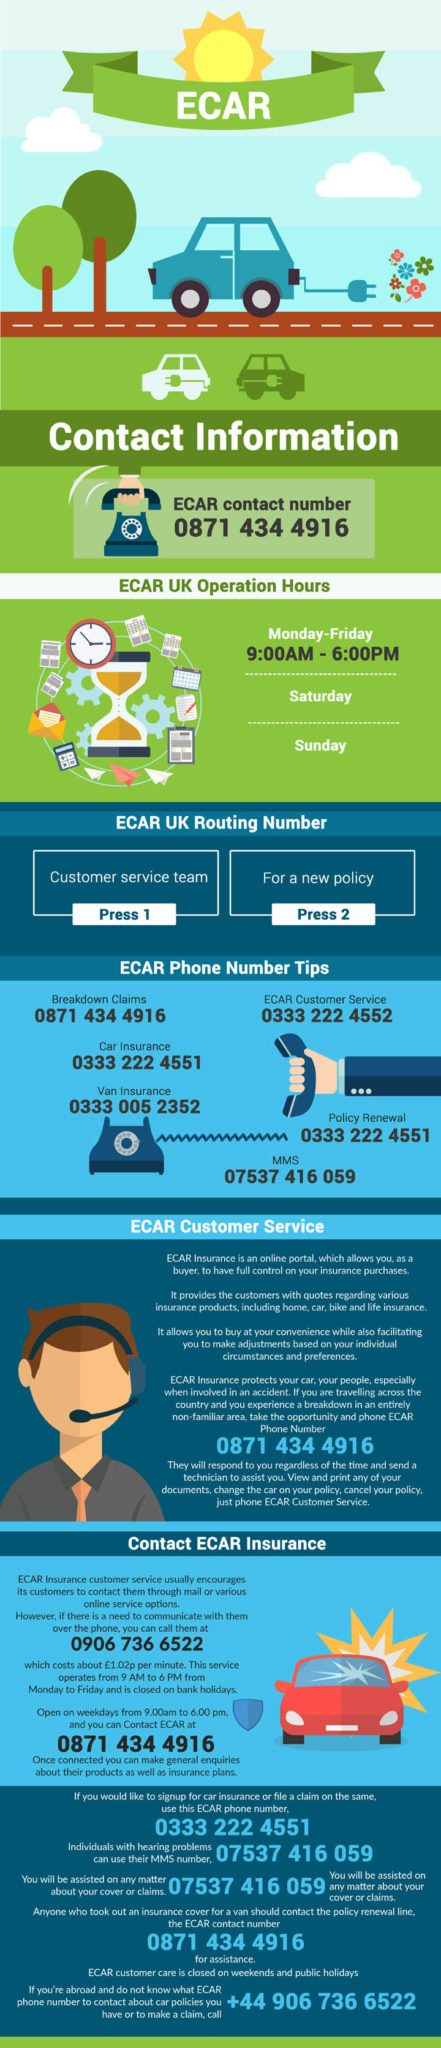 ECAR Insurance Customer Service Contact Number